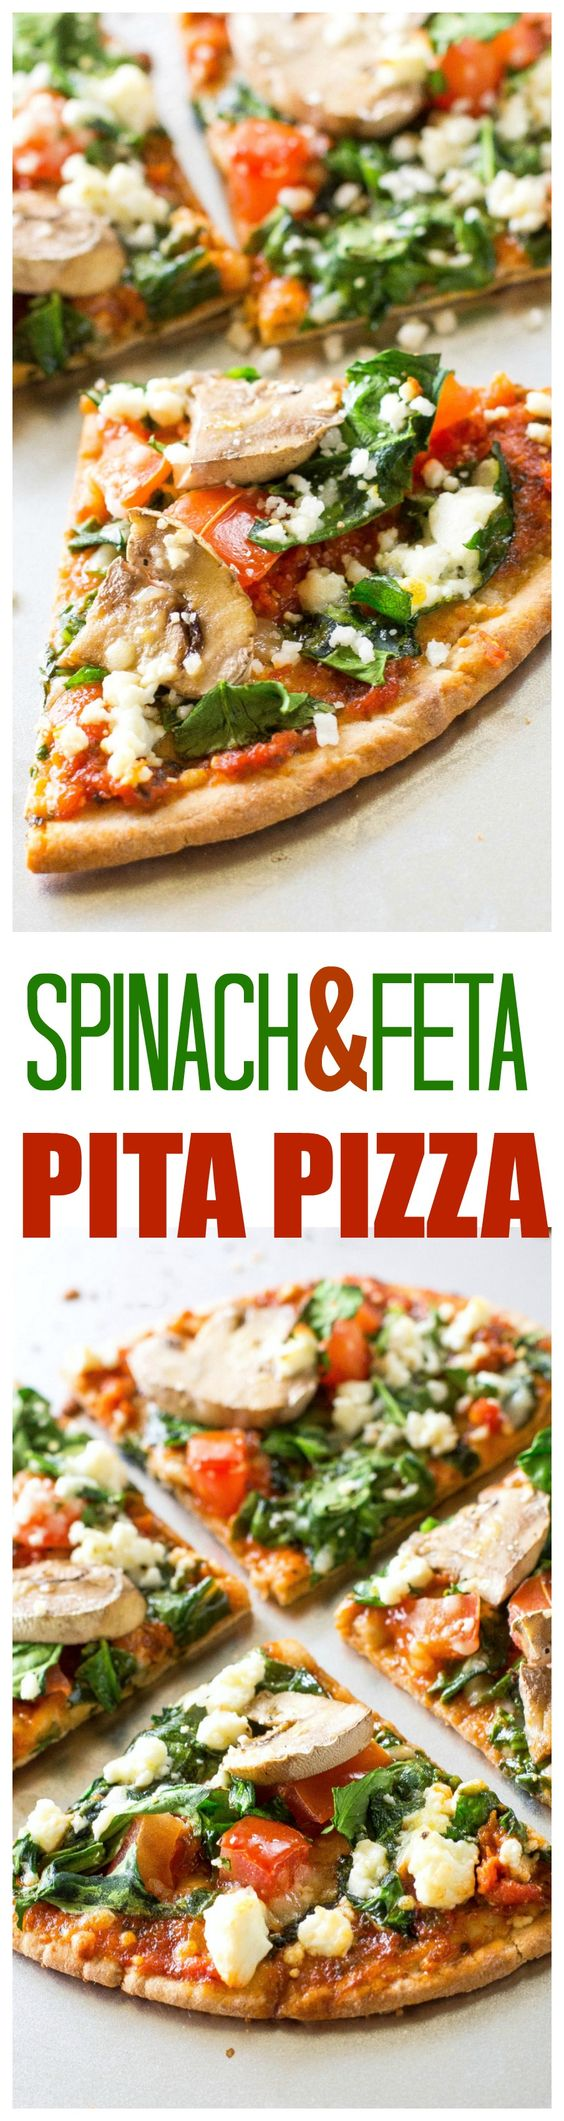 Spinach and Feta Pita Pizzas Recipe via The Girl Who Ate Everything - a great appetizer or even filling enough for a meal. Only 350 calories per pizza..